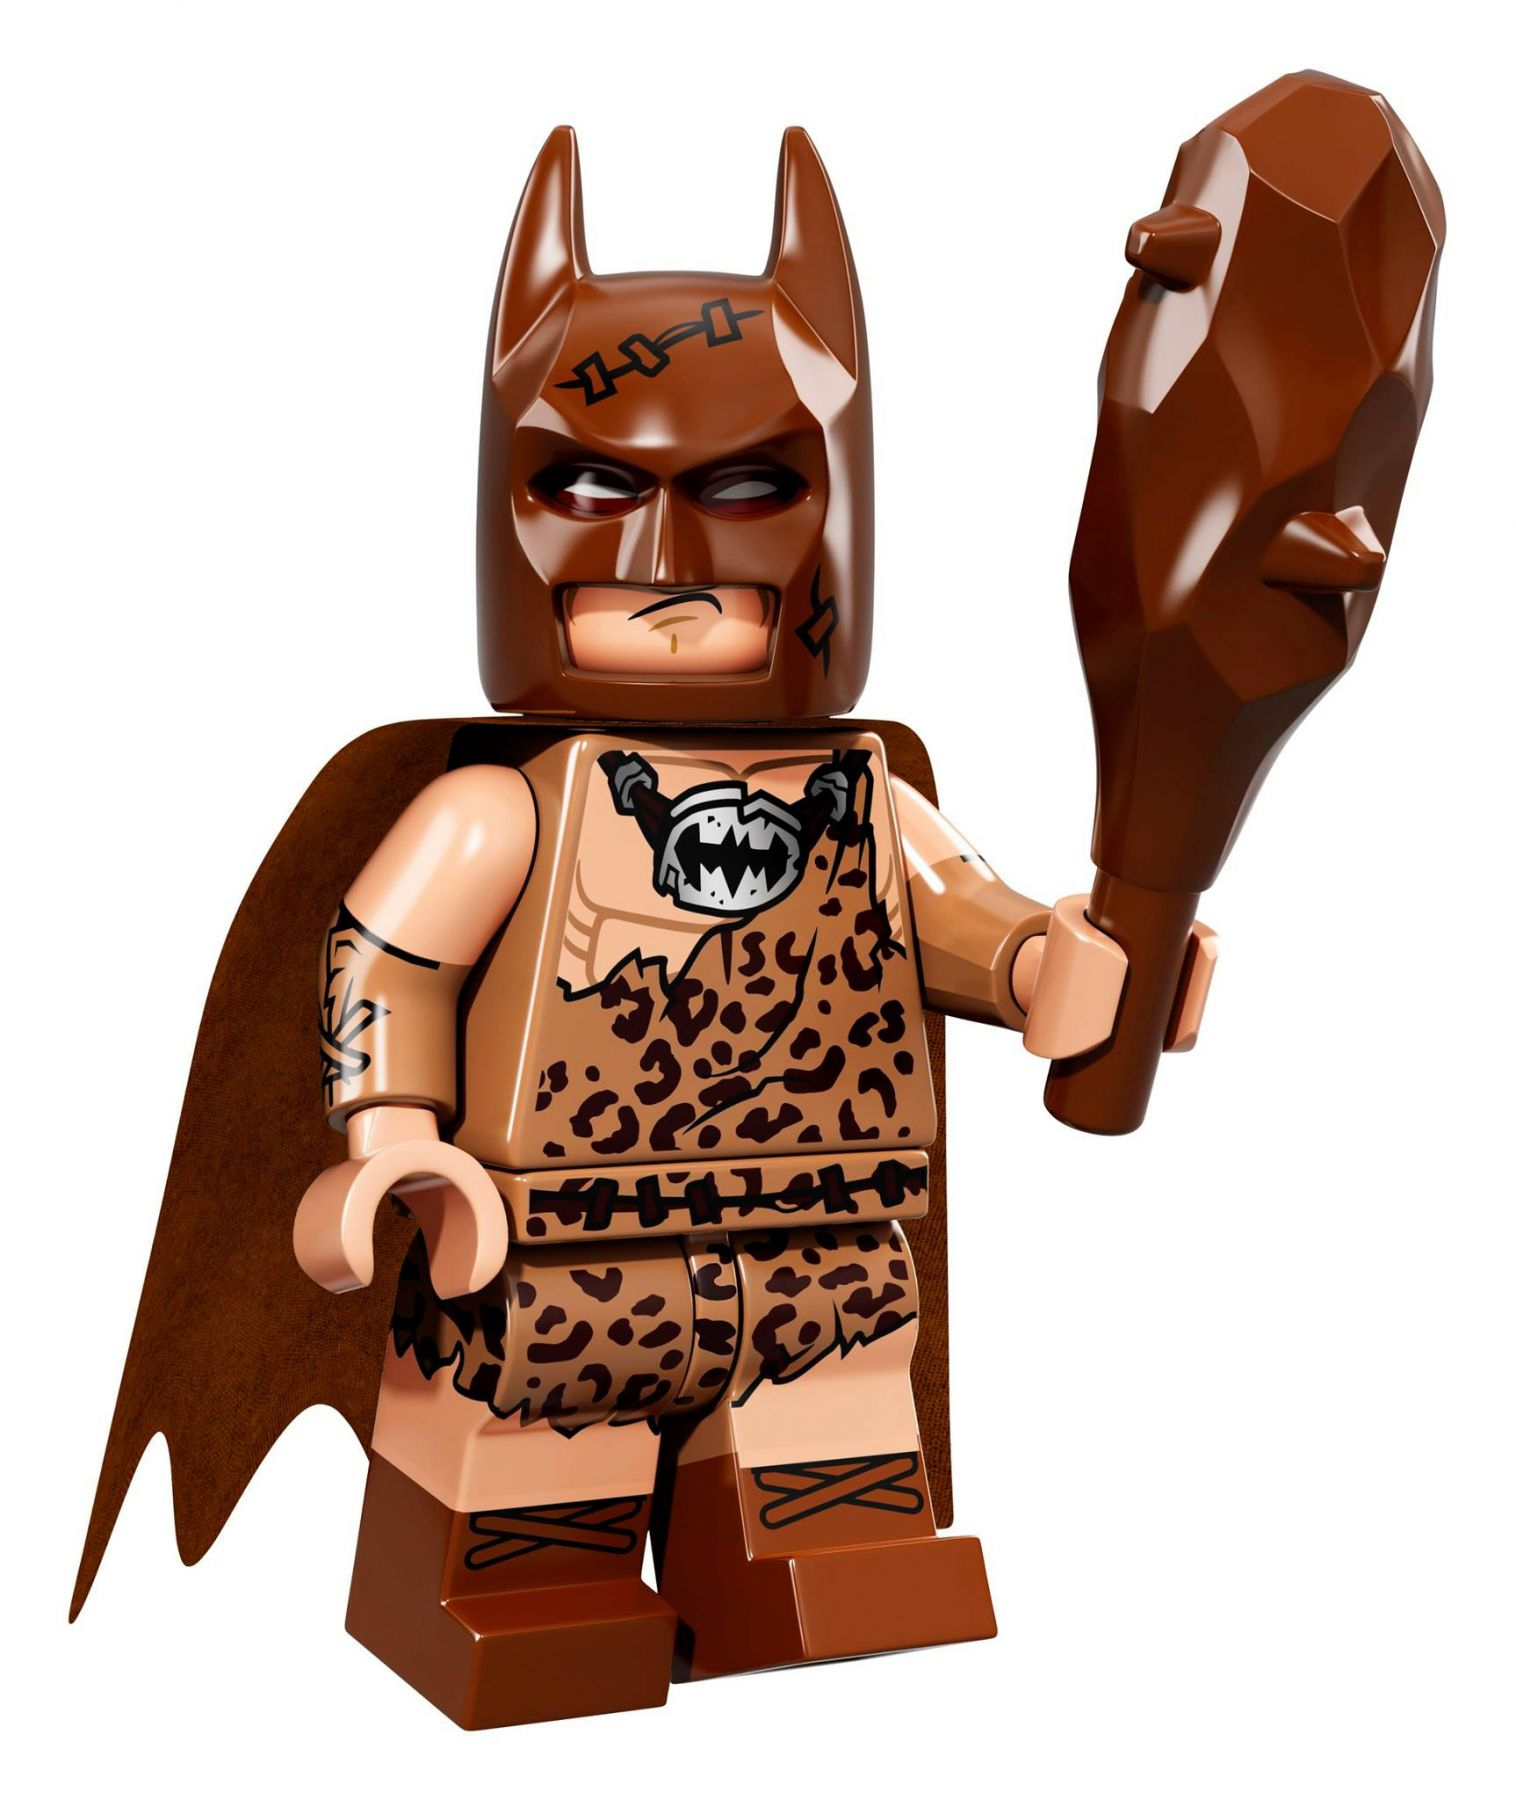 LEGO Collectable Minifigures 71017 LEGO® Batman Movie Minifiguren Serie 71017_LEGO_Batman_Movie_Minifiguren_Serie_figur10.jpg